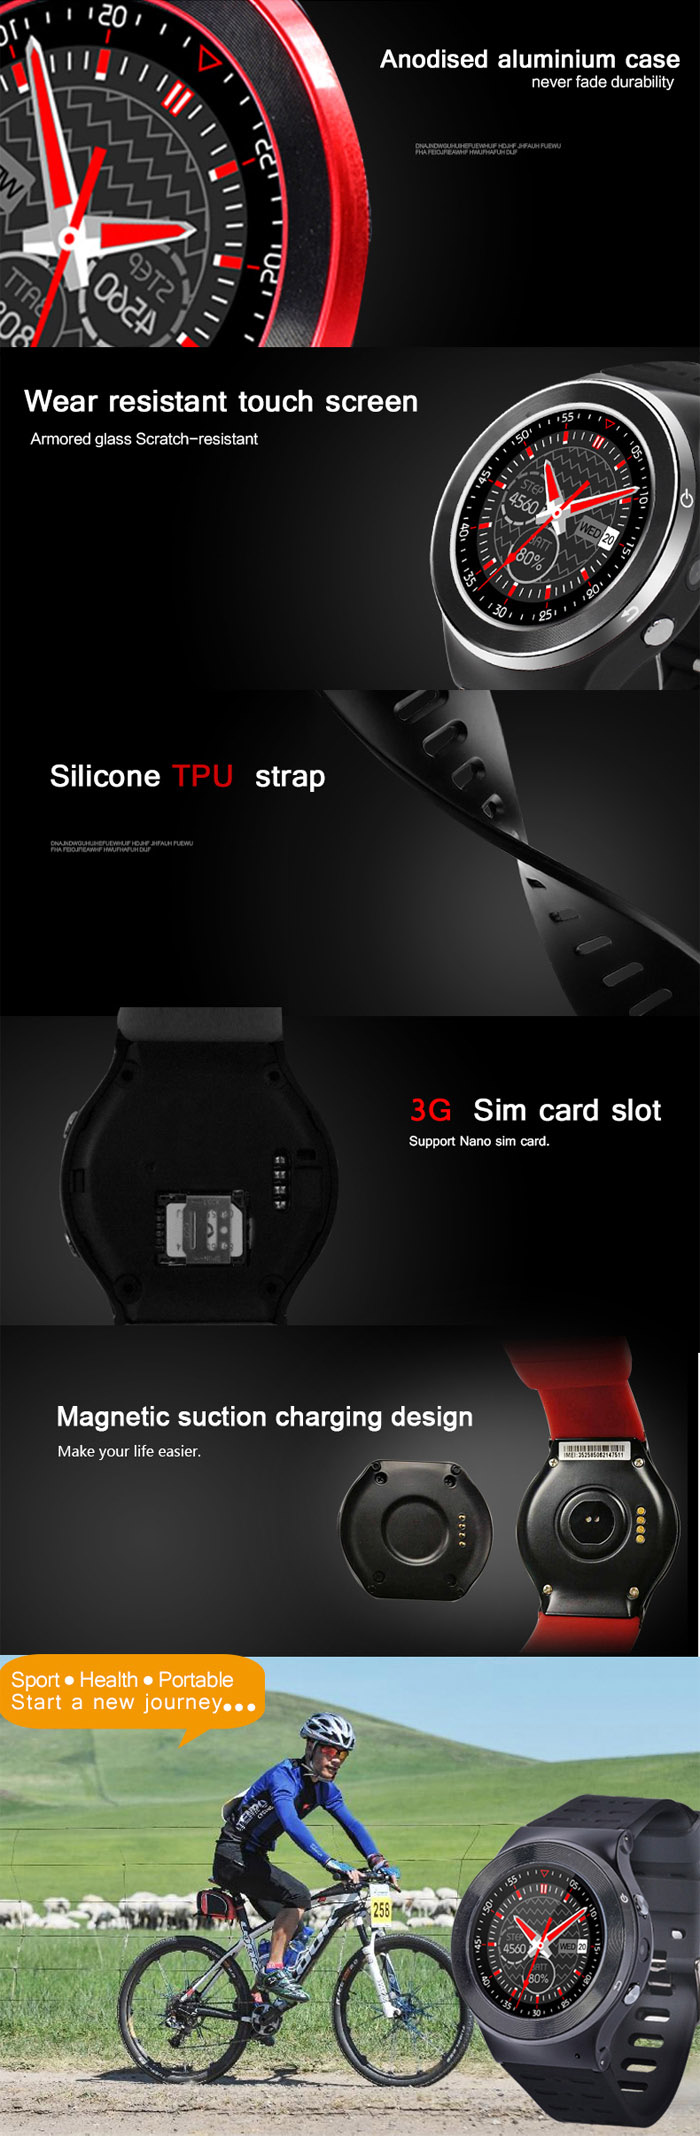 ZGPAX S99 Android 5.1 1.33 inch 3G Smartwatch Phone MTK6580 1.3GHz Quad Core 512MB RAM 8GB ROM Pedometer Bluetooth 4.0